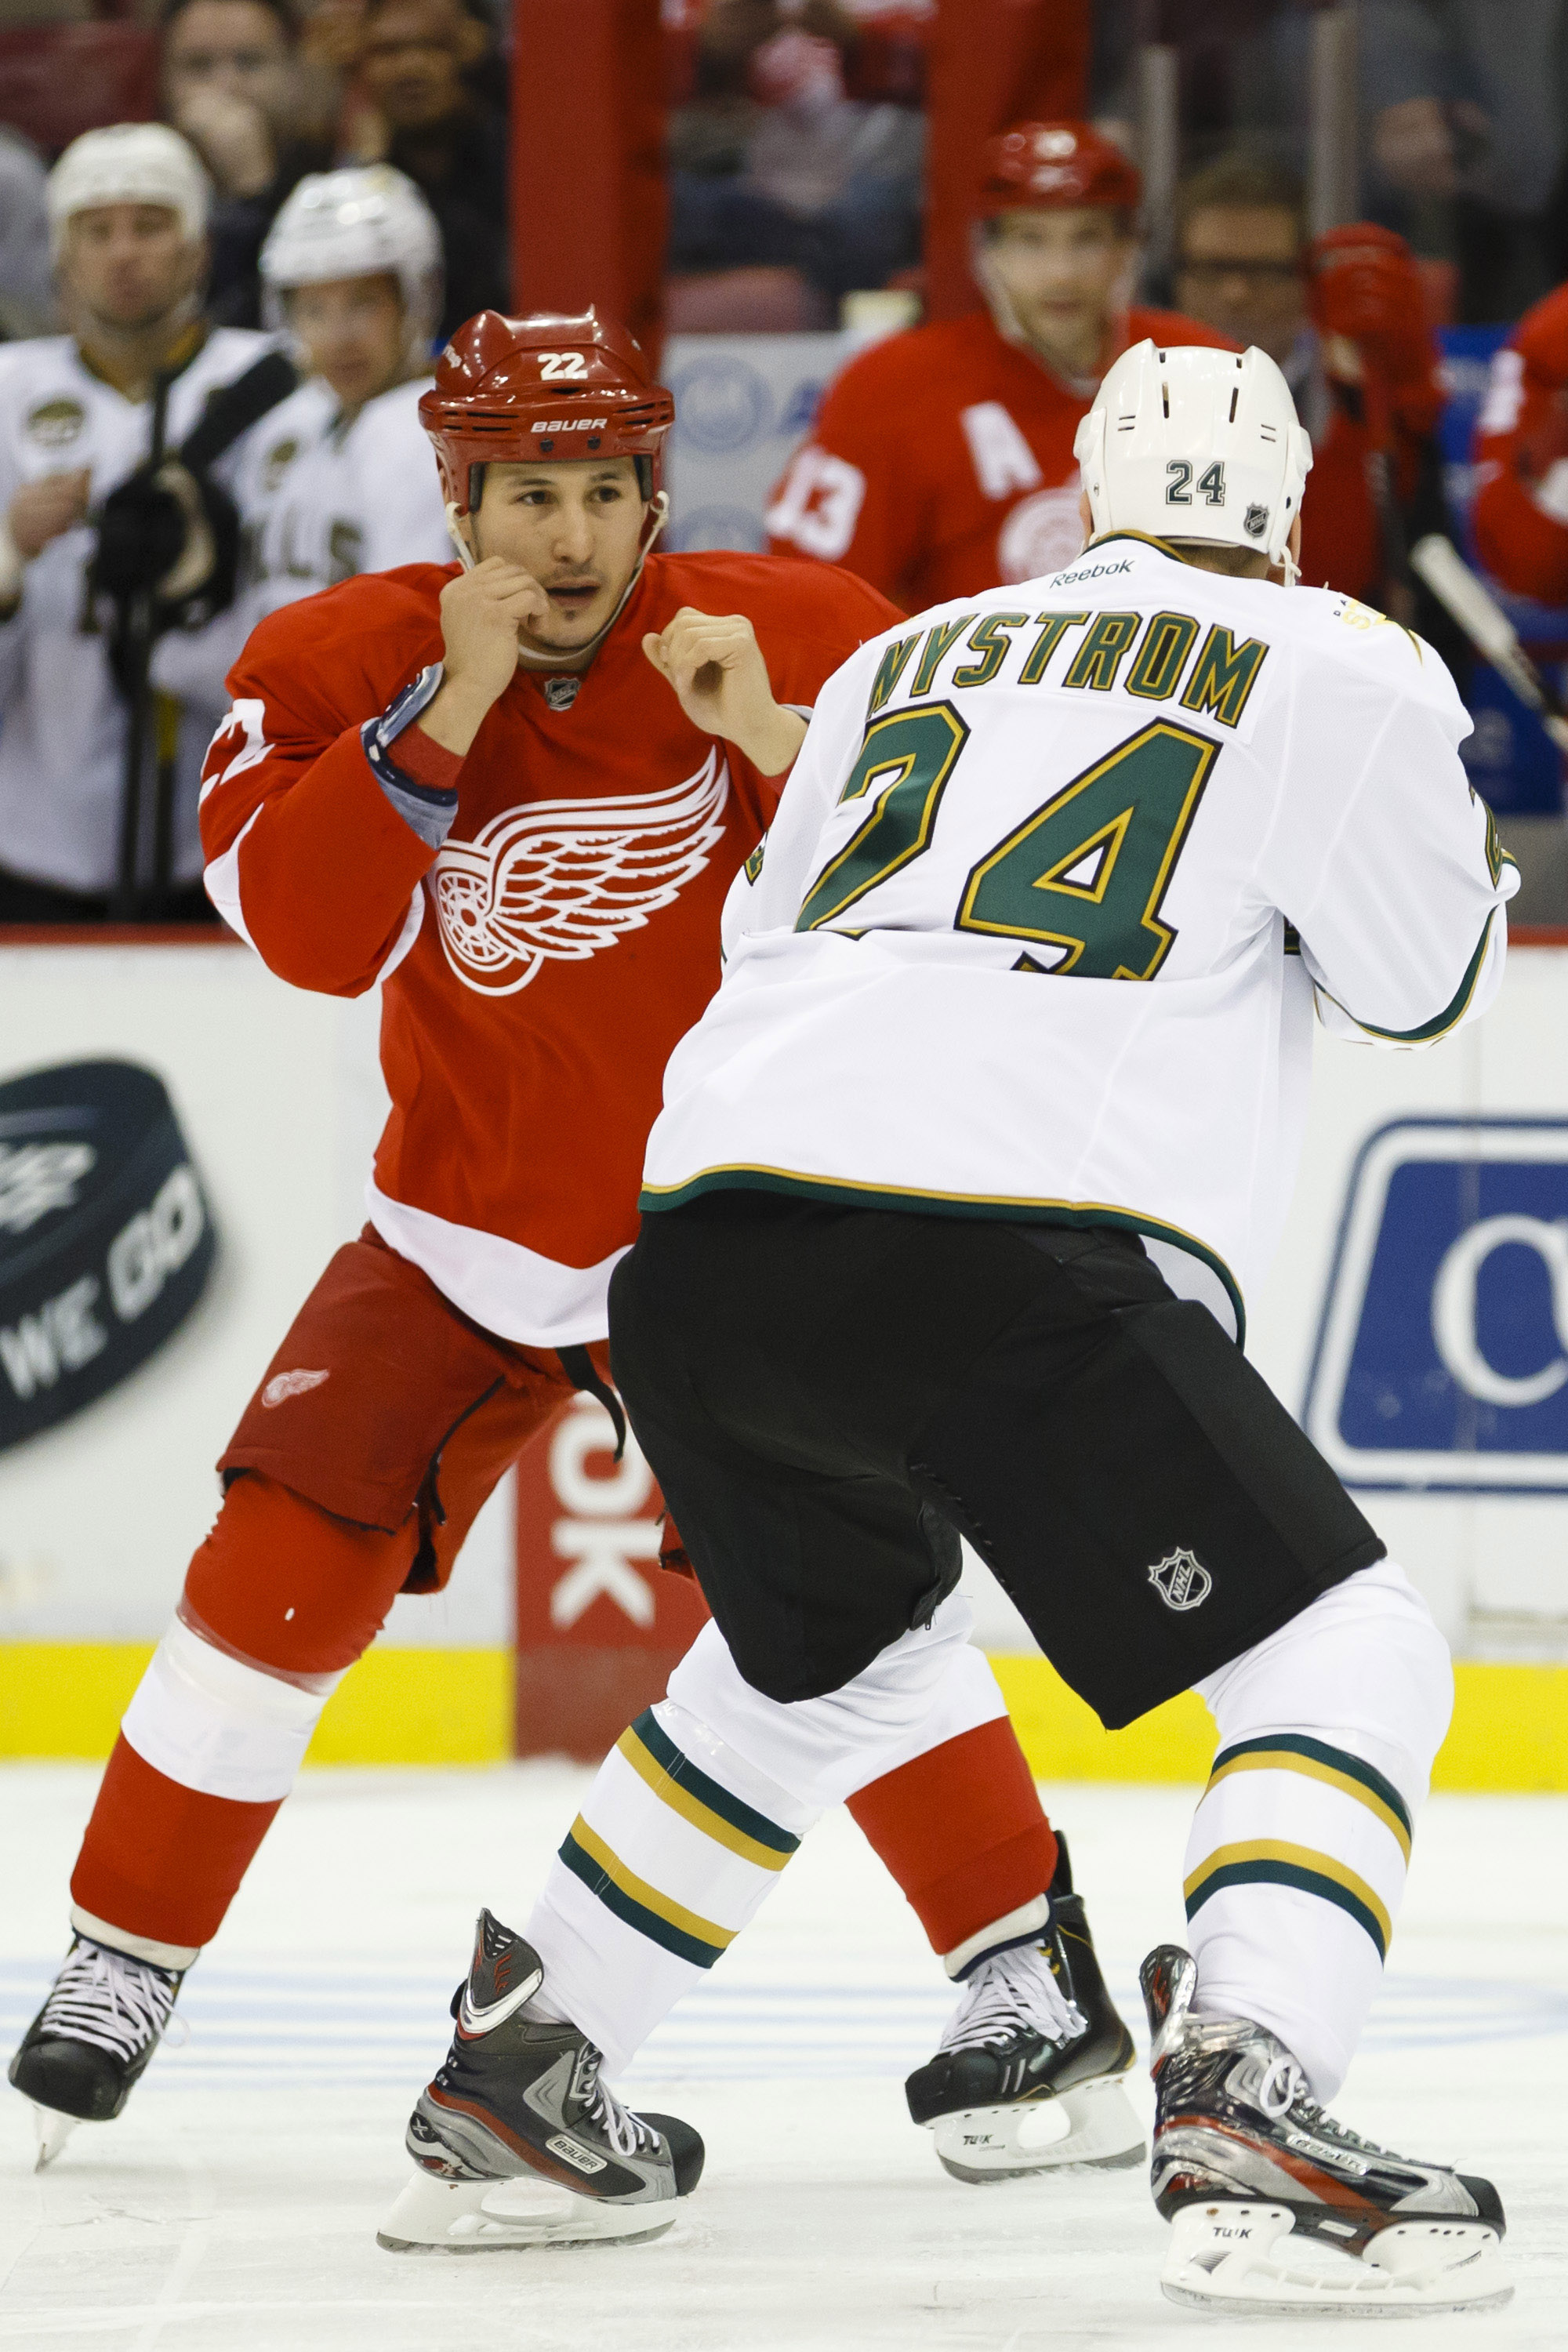 Detroit's Jordin Tootoo fought off the opening faceoff twice earlier this season. (USA Today)